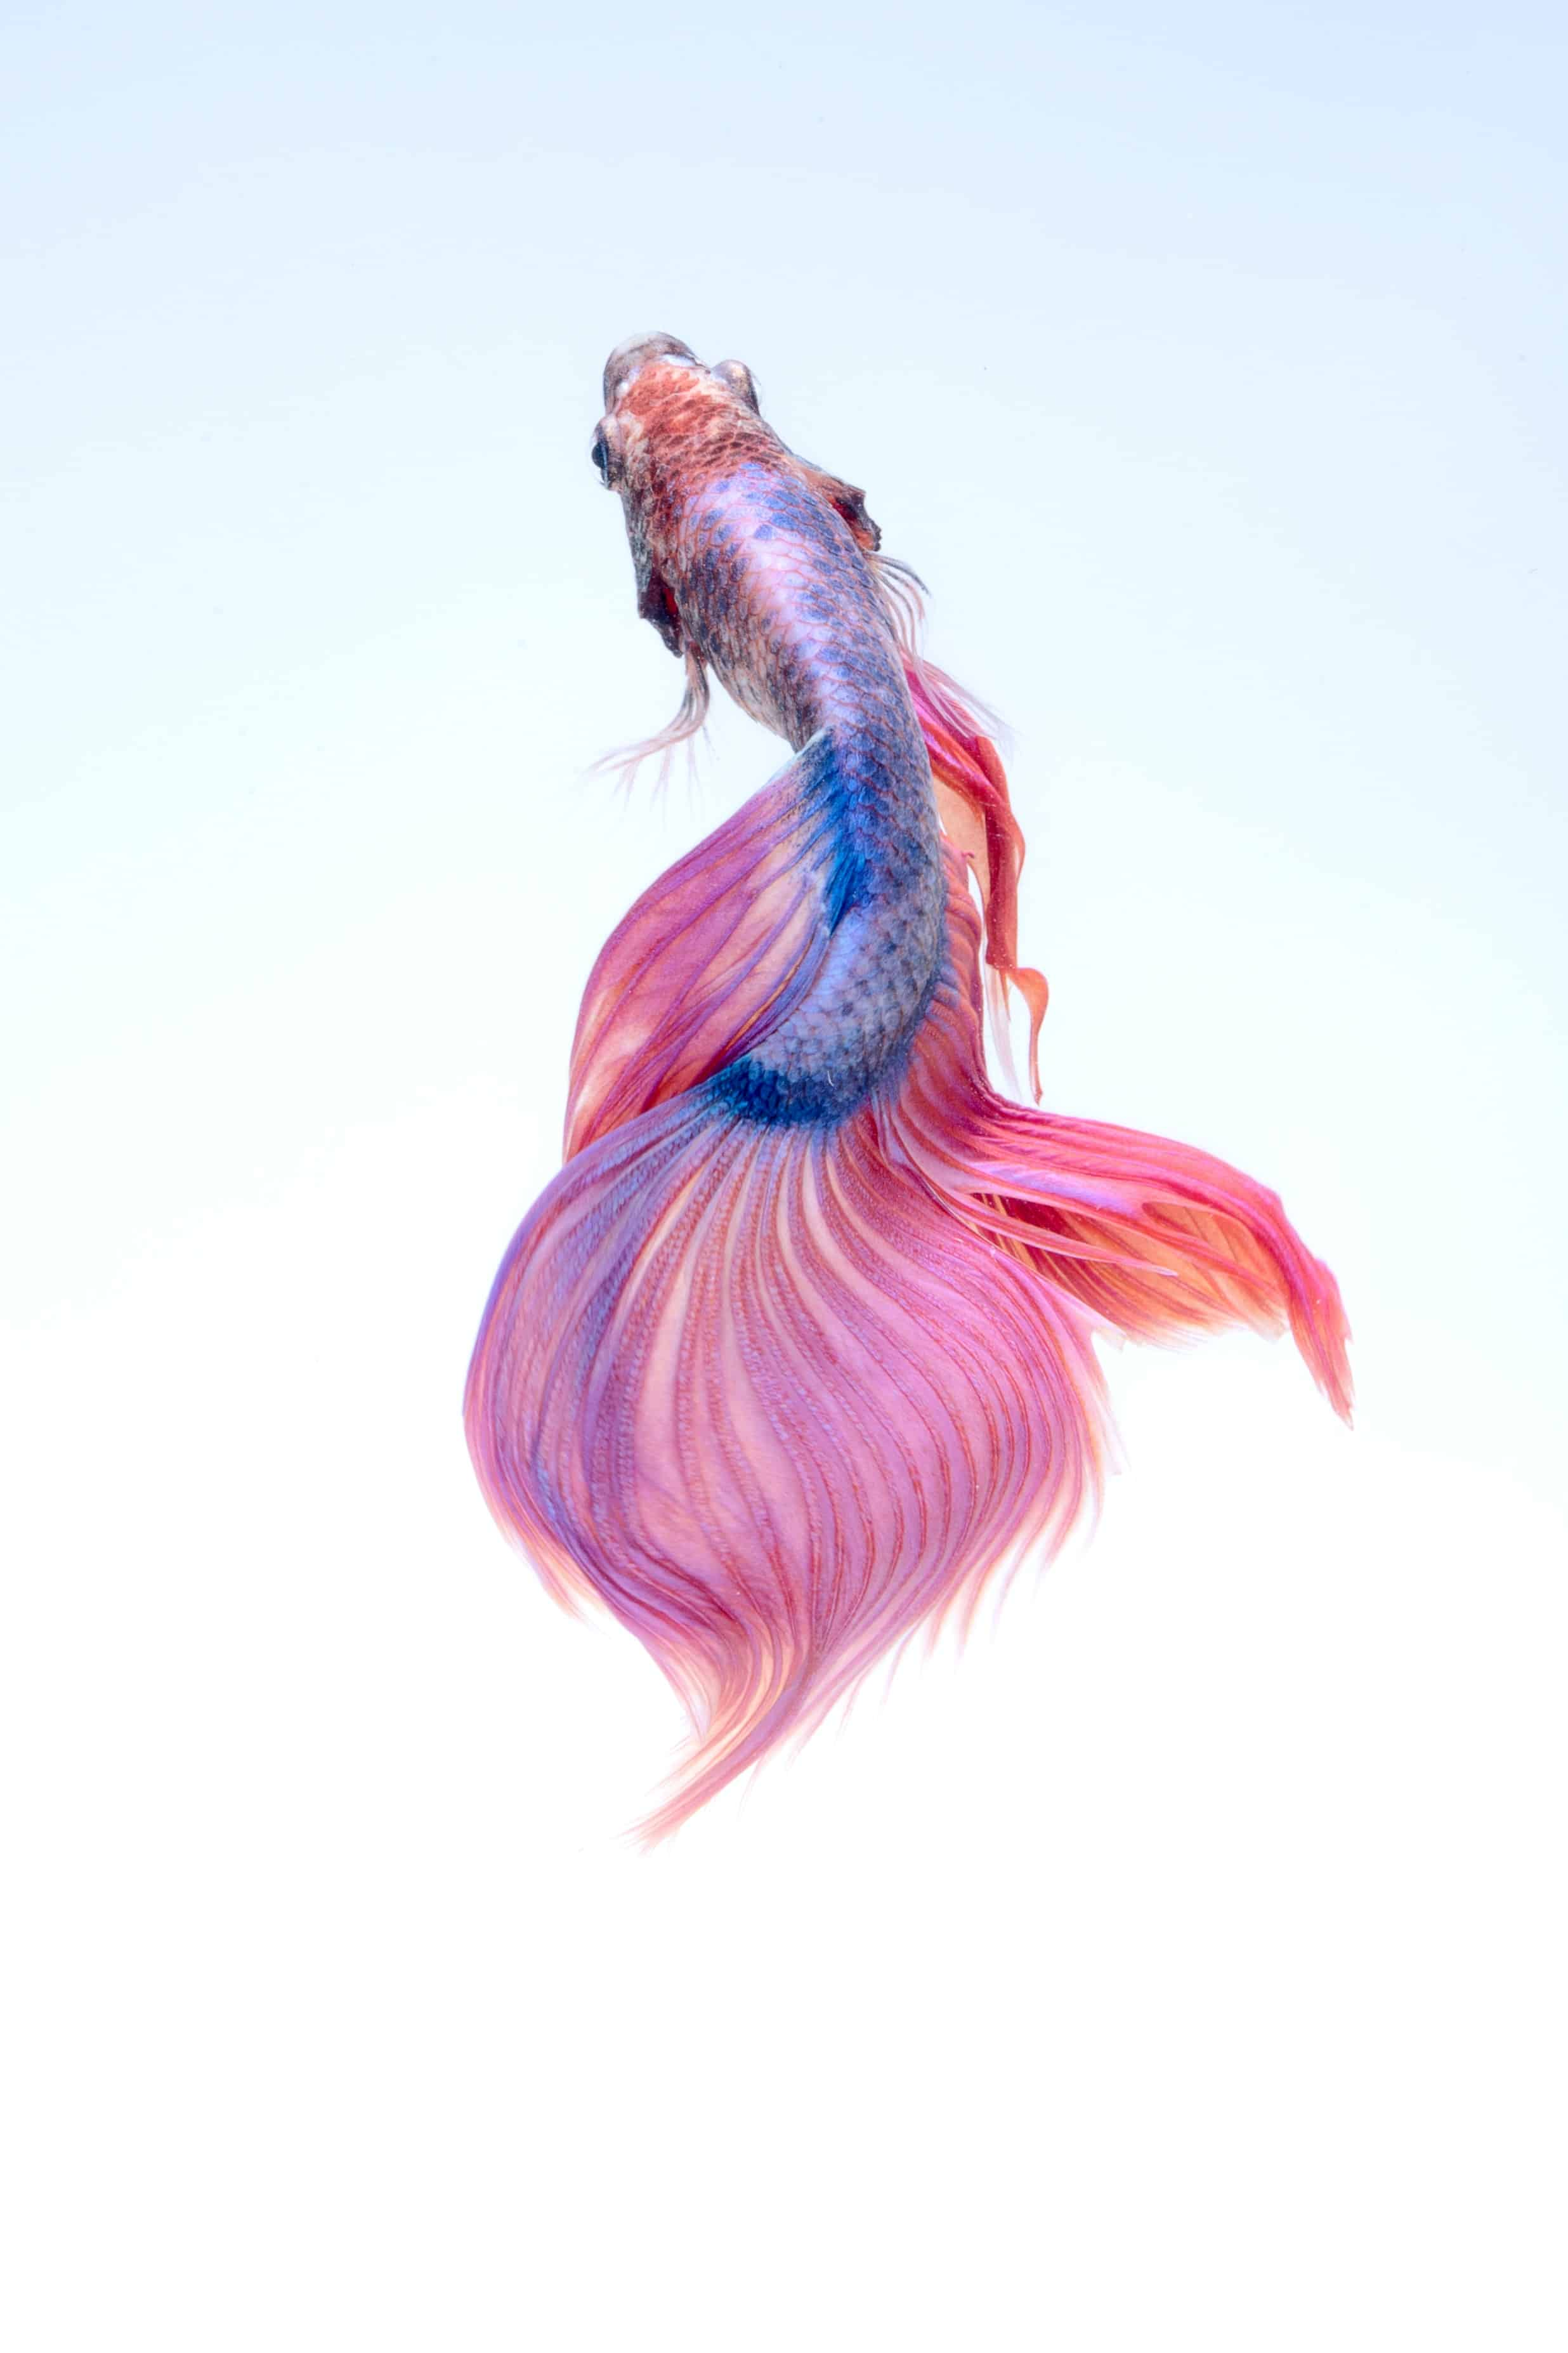 How to Prolong Betta Fish Life